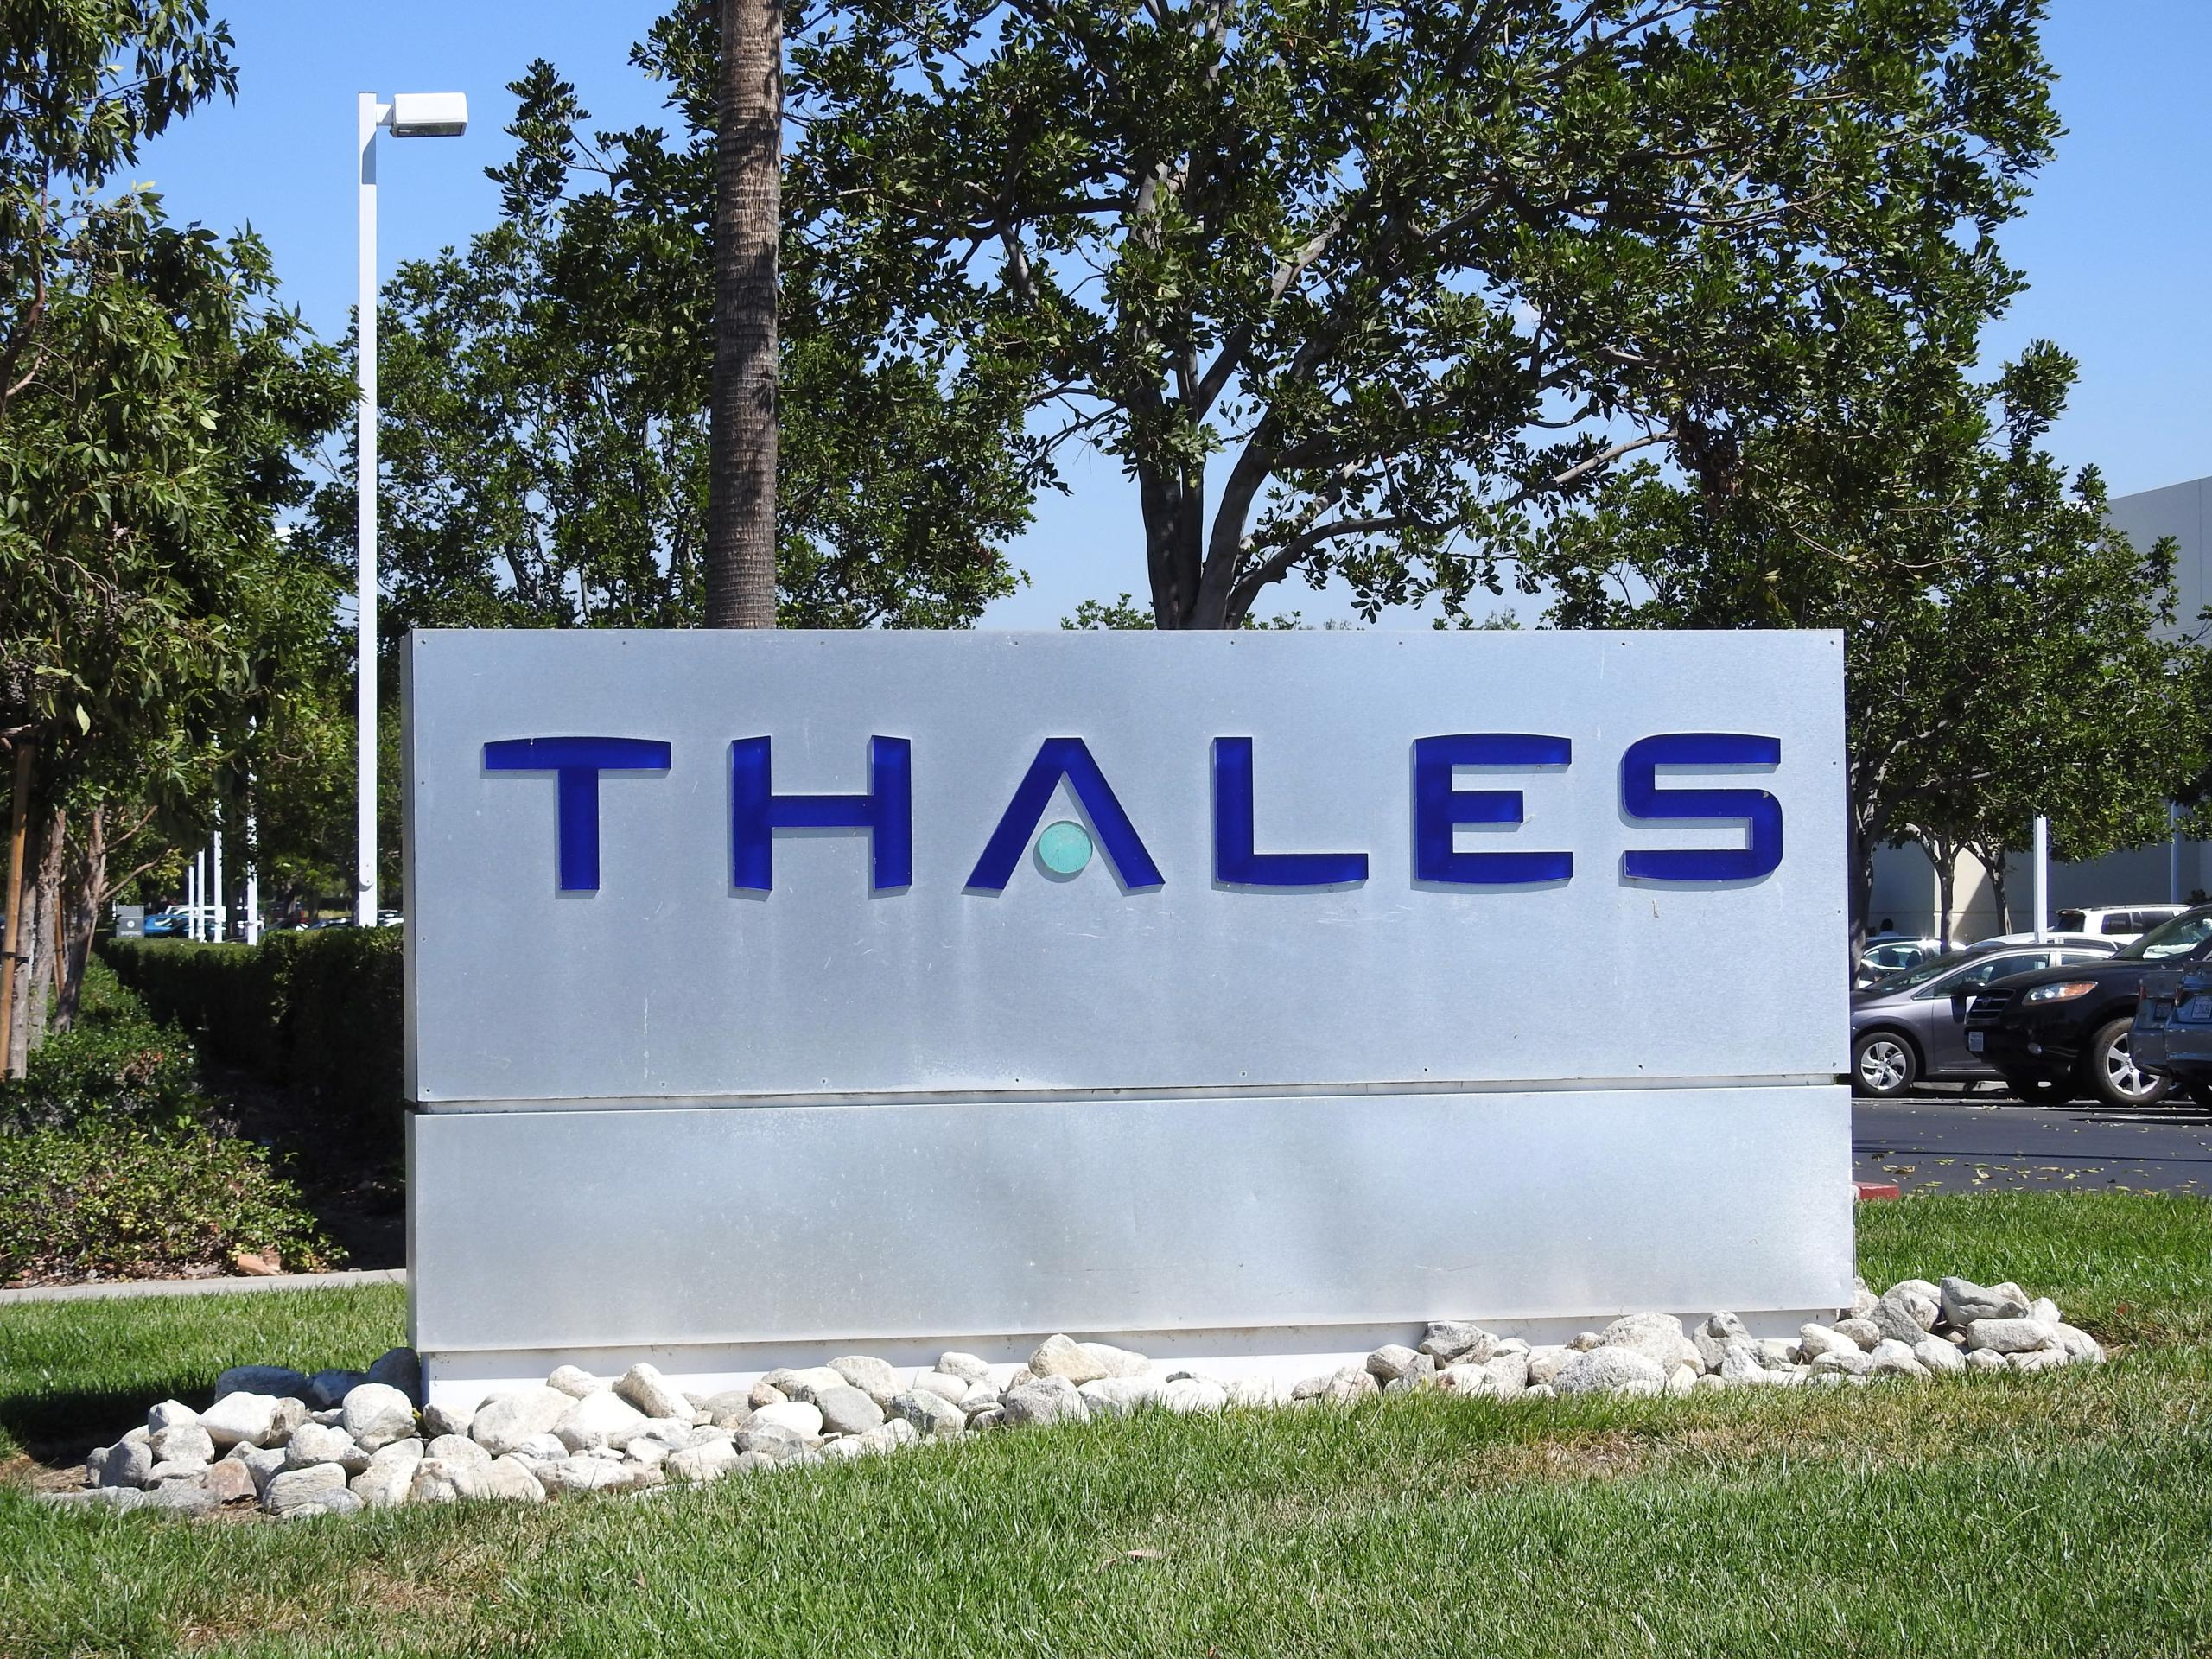 Entrance to a Thales facility in Irvine, California.